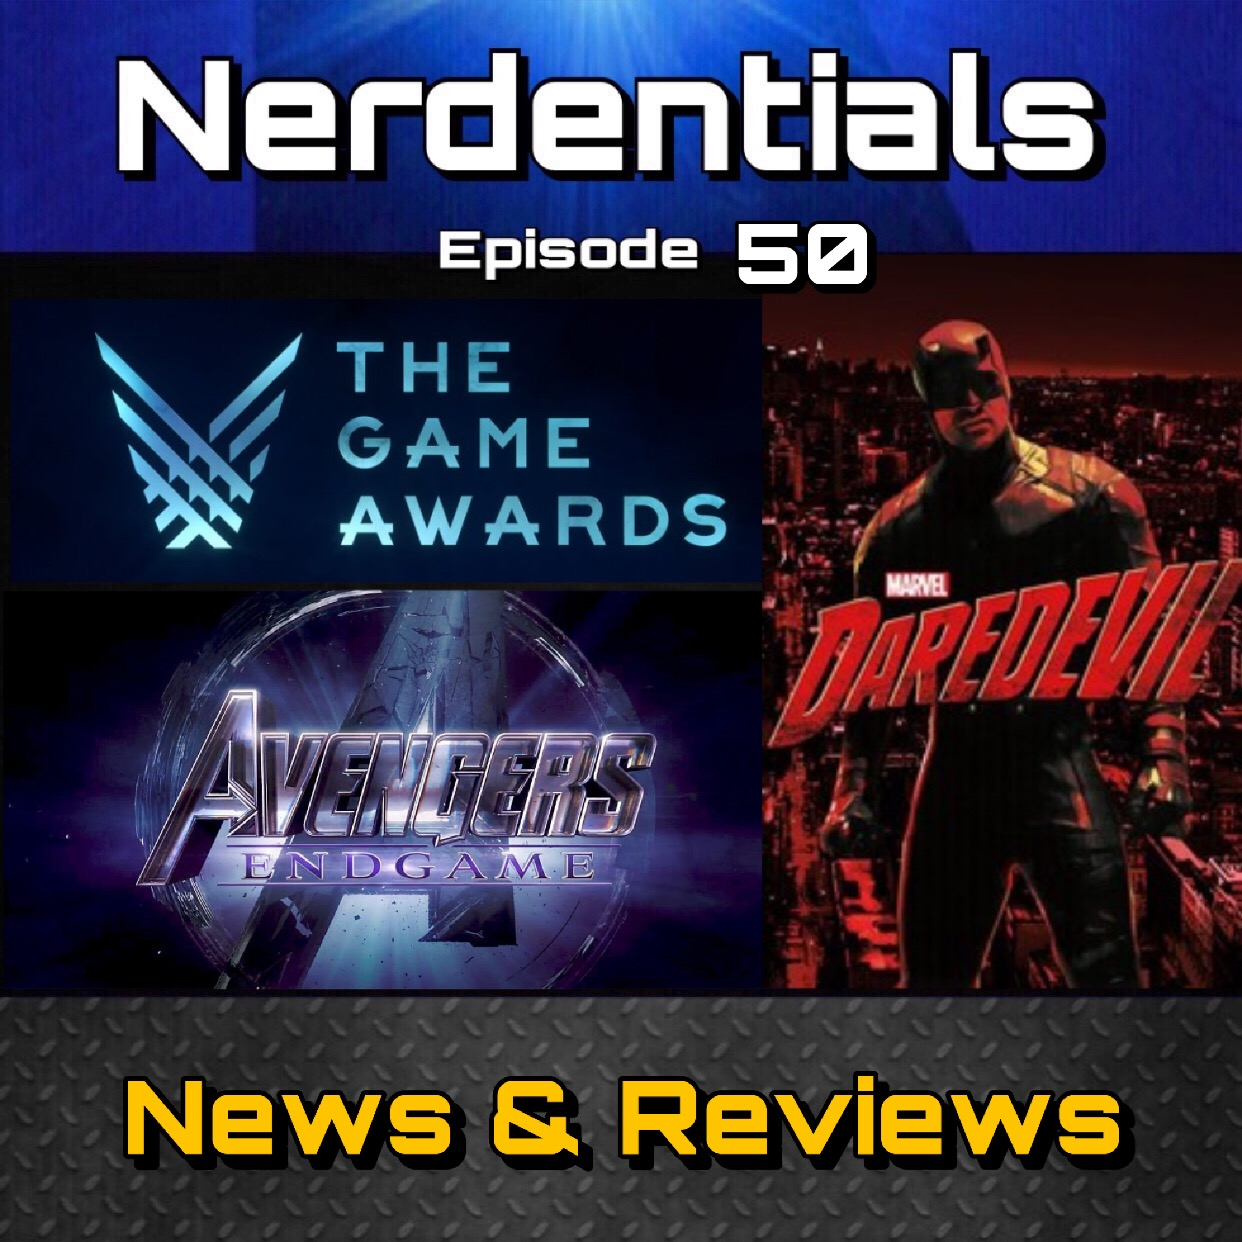 - Welcome to Nerdentials! Your weekly dose of the nerdy essentials. Covering Film, TV, Video Games and Comics.This Week Nerds its a variety of news for our 50th Episode! Your Hosts Joe, Matt, Nick and Lynn kick things off with a little Video Game Awards Chatter. We discuss our feelings on Game of the Year.Then we cut over to some TV news with a lively discussion on why Netflix is slowly axing their Marvel Original Shows, most recently cancelling Daredevil...